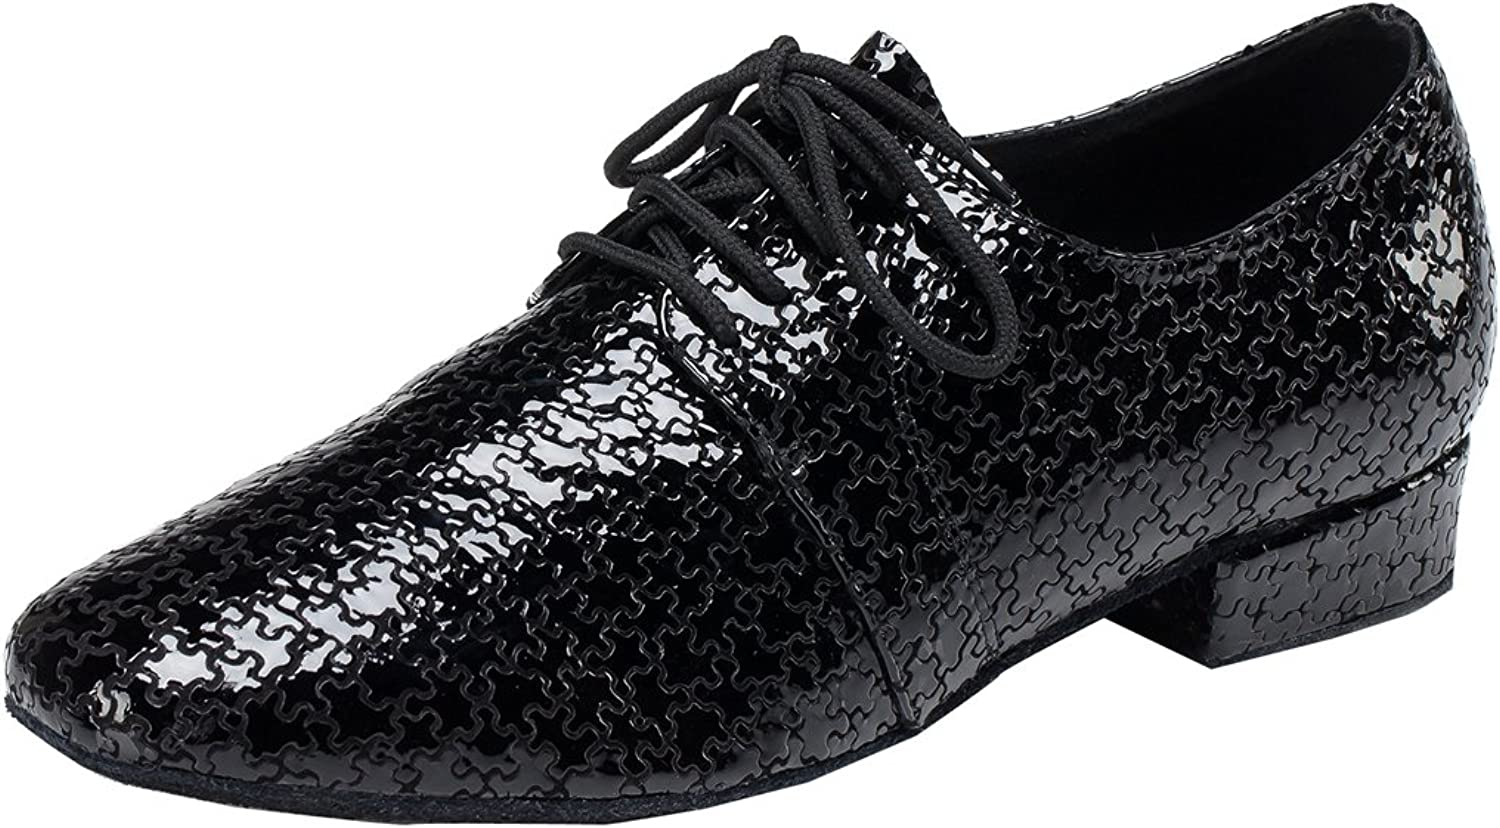 TDA Men's Fashion Comfort Lace-up Round Toe Leather Salsa Tango Ballroom Latin Modern Dance shoes